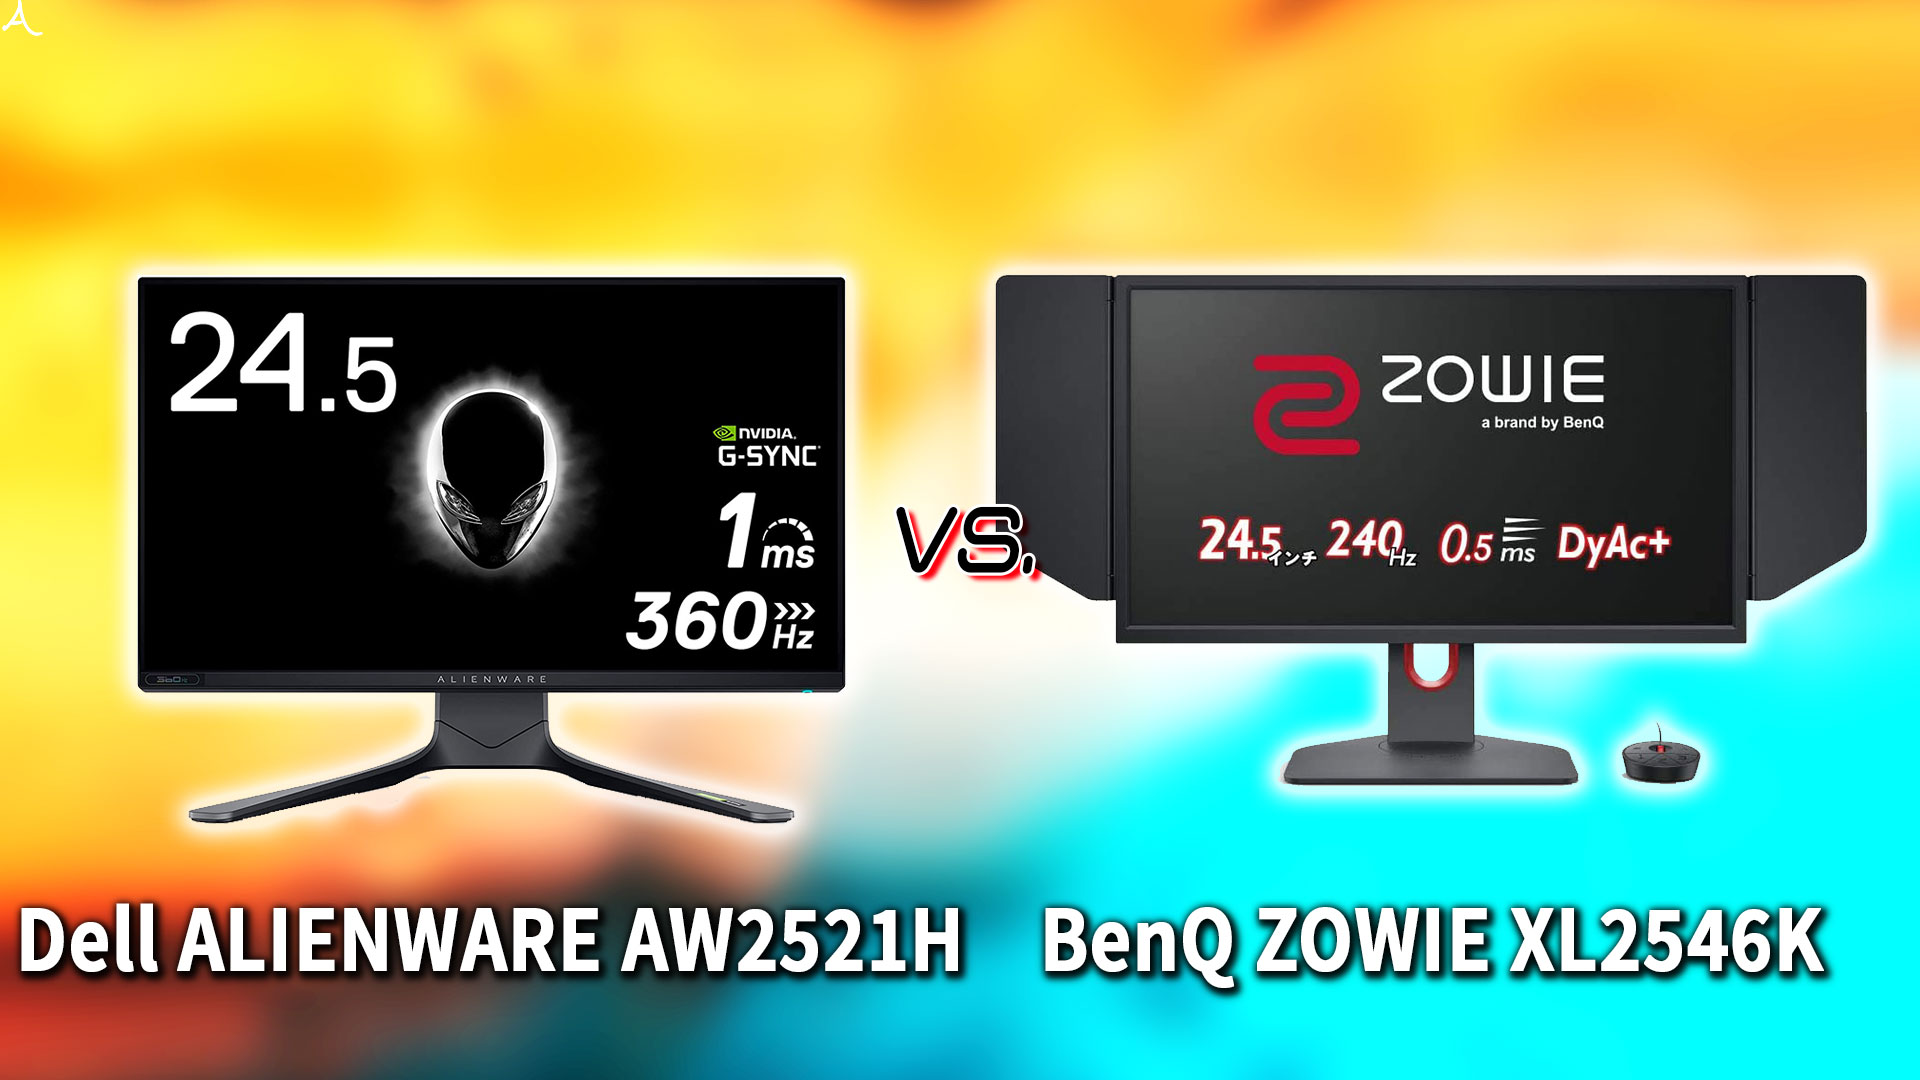 「Dell ALIENWARE AW2521H」と「BenQ ZOWIE XL2546K」の違いを比較:どっちを買う?